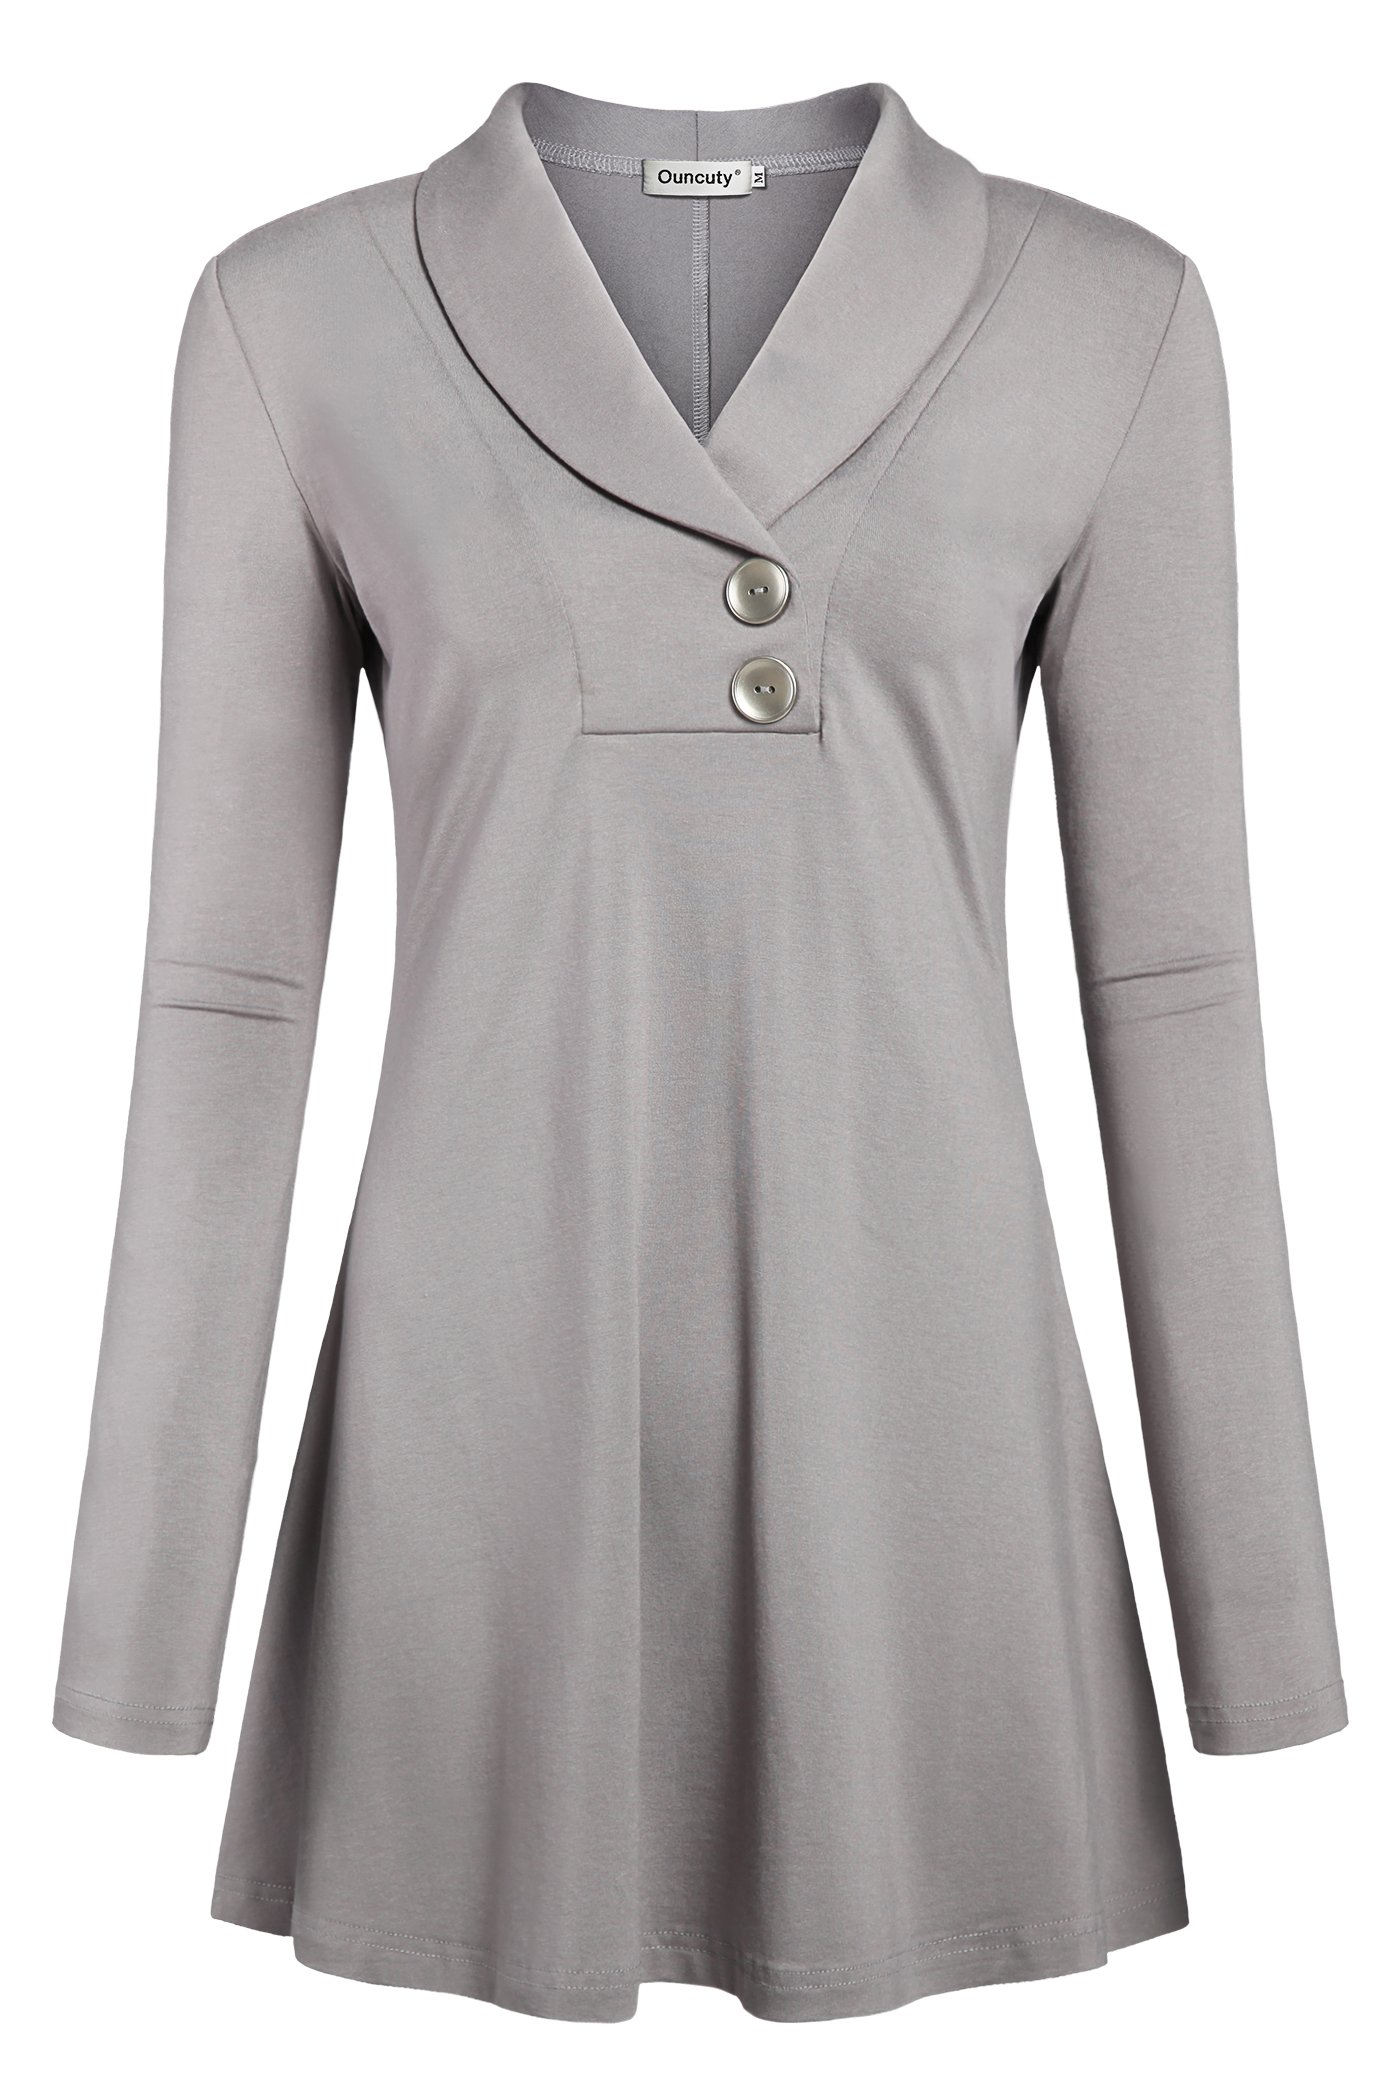 b09bd7f24ad0a8 Ouncuty Women Tunic Tops for Leggings, Shirts for Women Long Sleeve  Business Casual Blouses Tunic Sweatshirts Flowy Tops Sexy Loose Blouses  Plus Size Grey ...